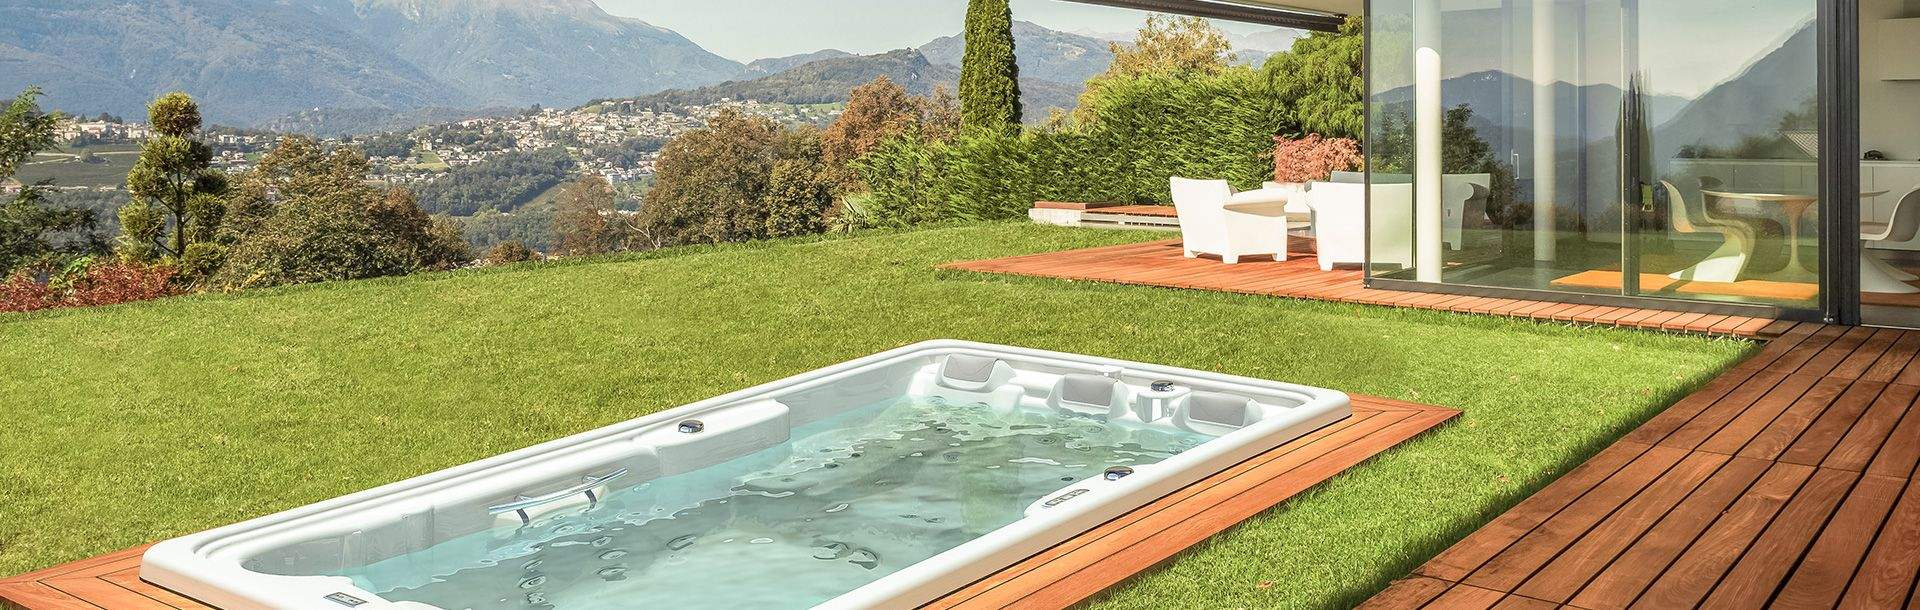 sopra outdoor swimspa